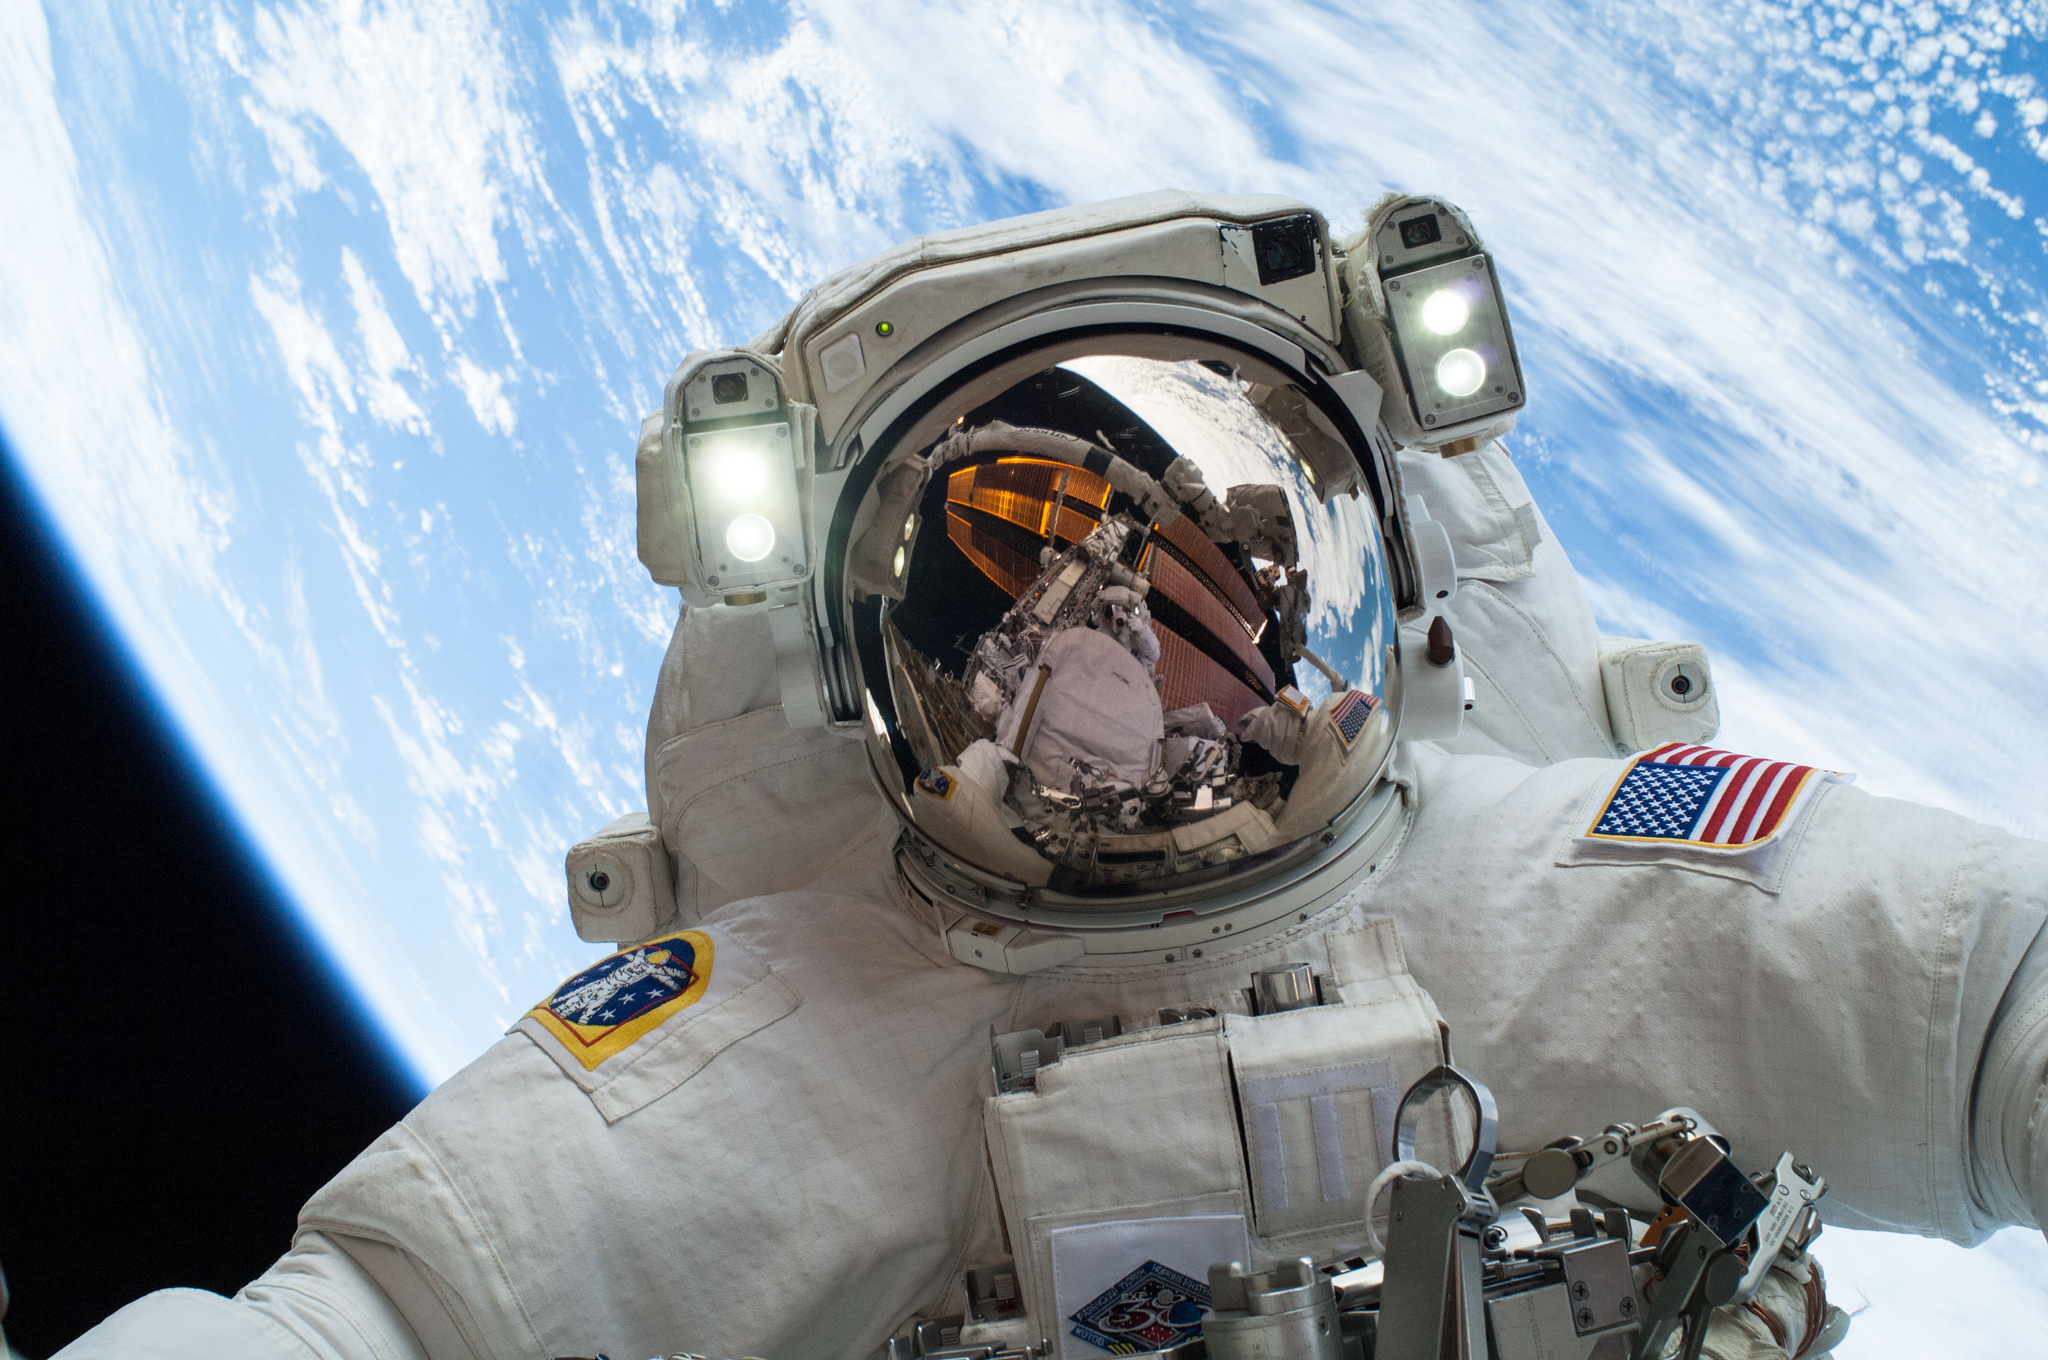 NASA astronaut Mike Hopkins participates in the second of two spacewalks, which were designed to allow the crew to change out a faulty water pump on the exterior of the space station. Fellow spacewalker Rick Mastracchio appears in the reflection of Hopkins' helmet. Image Credit: NASA